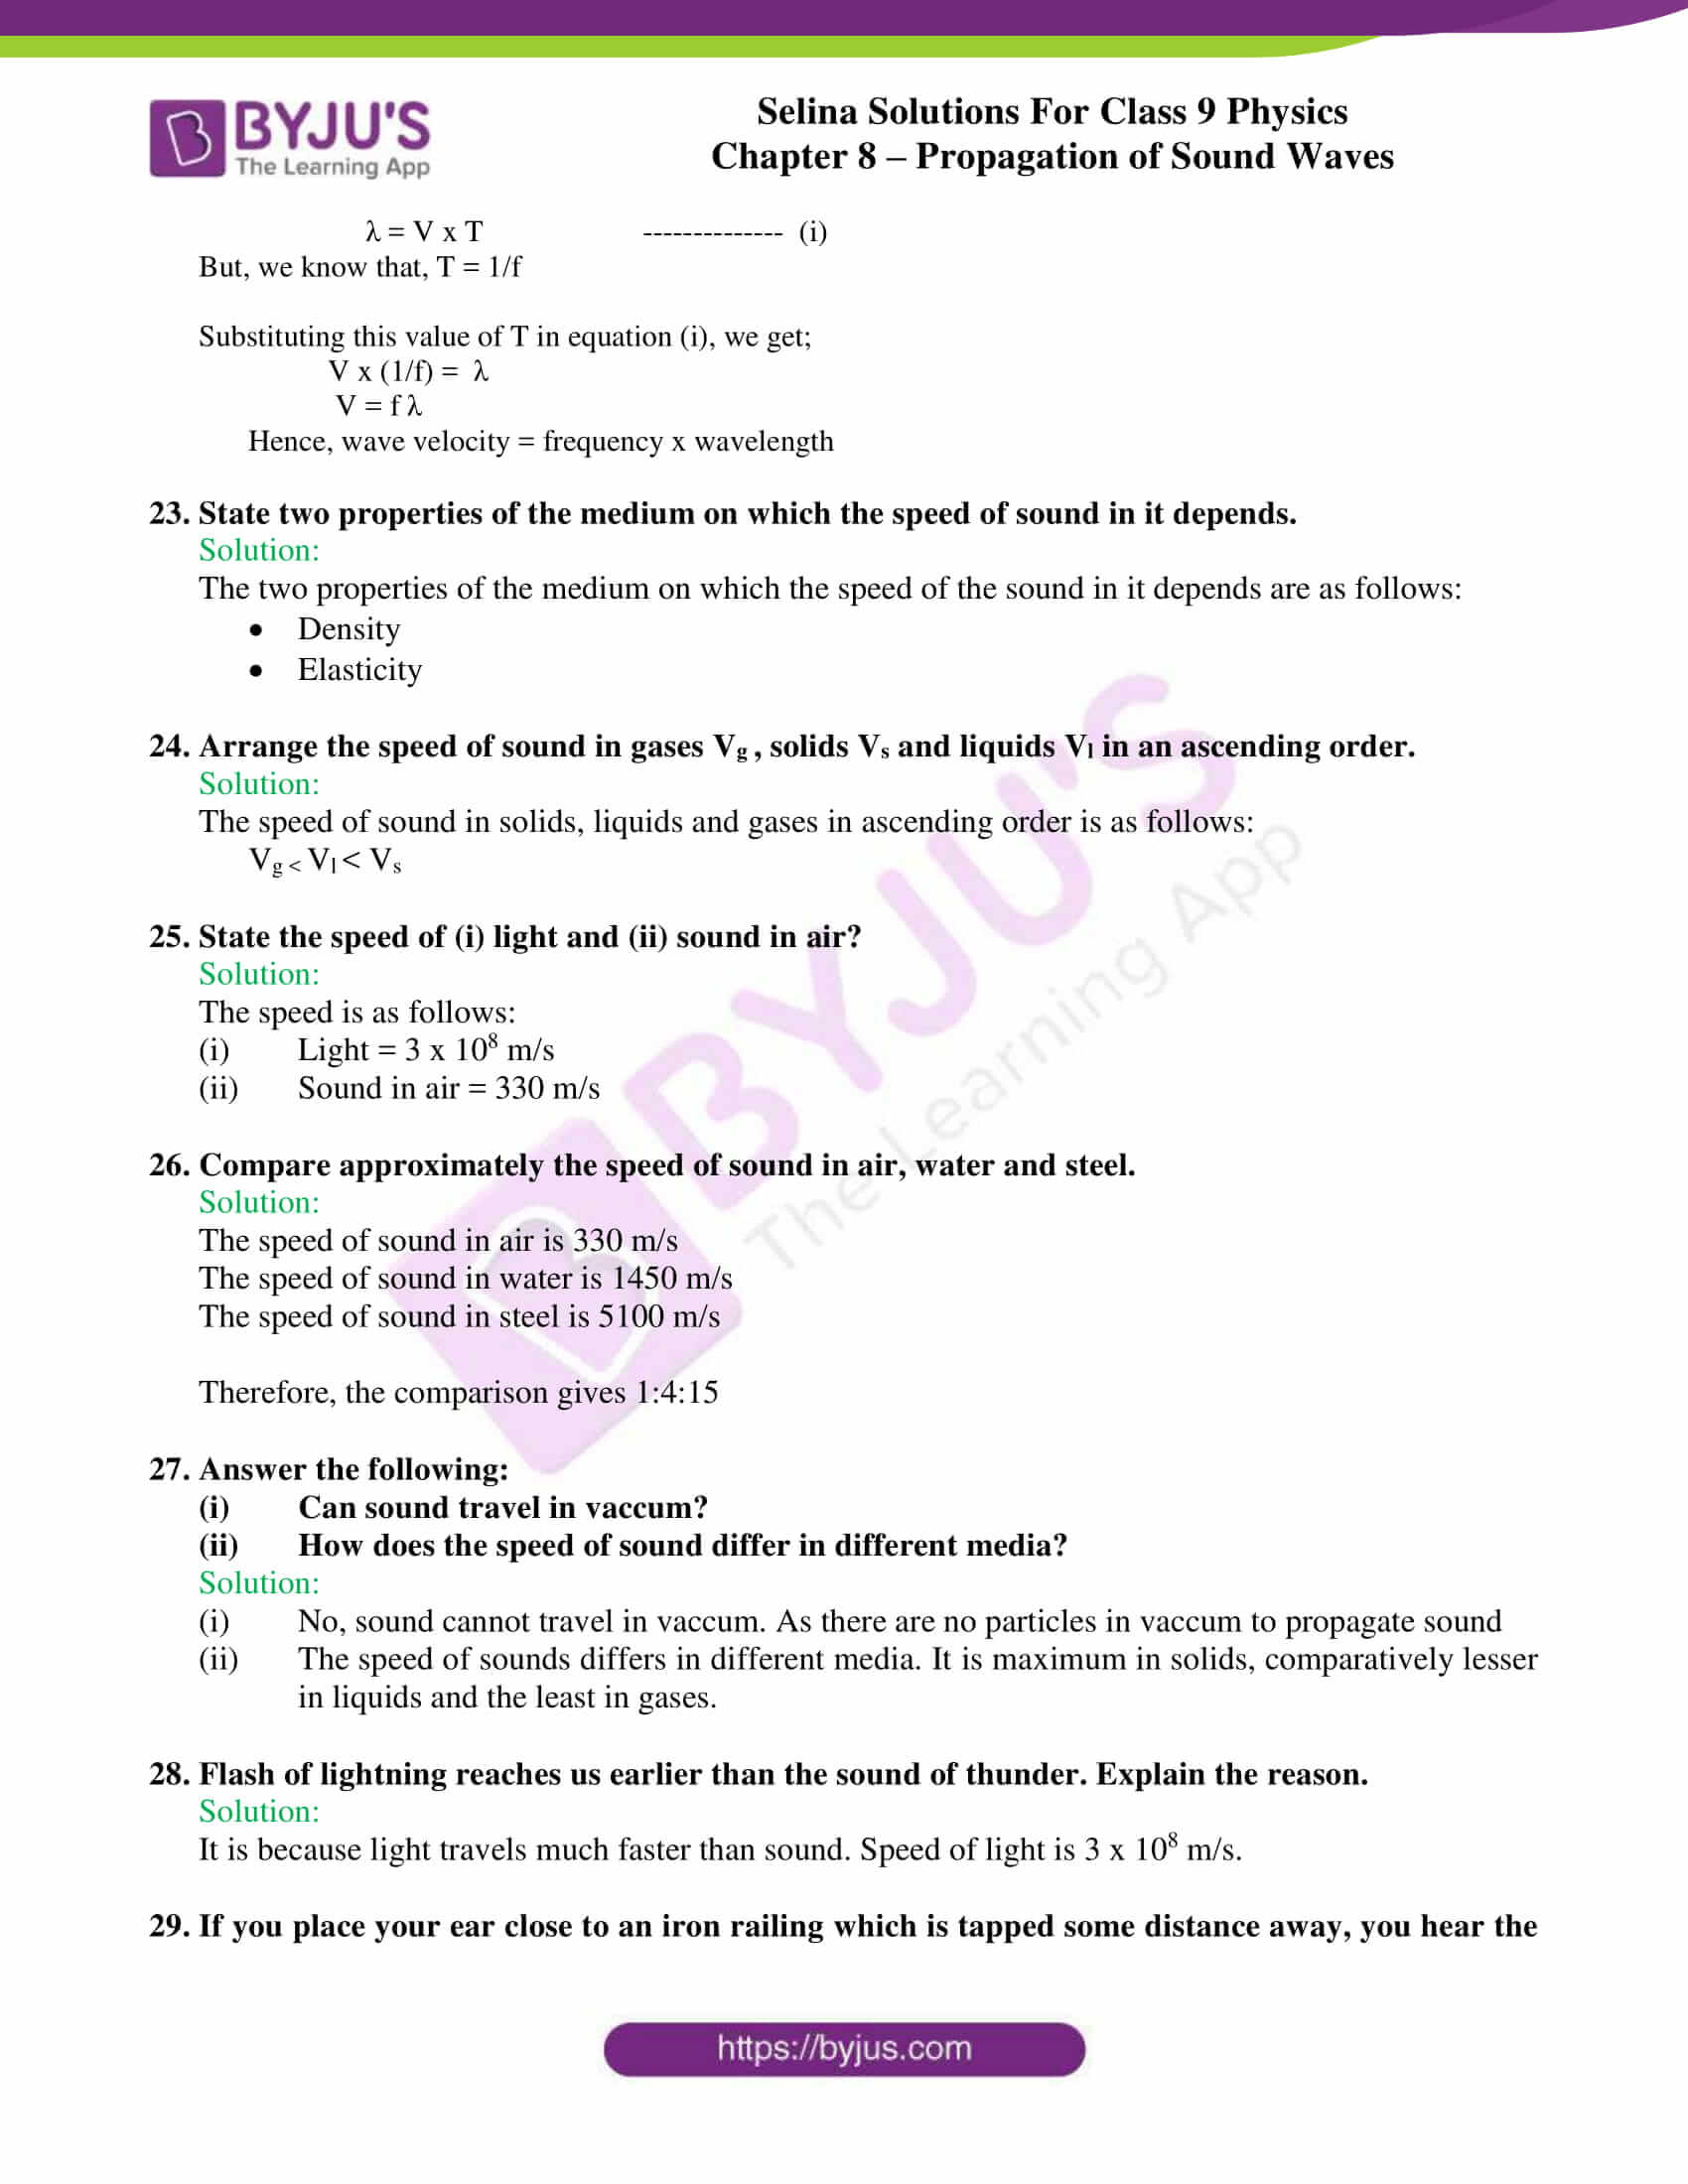 selina solutions class 9 physics chapter 8 Propagation of Sound Waves part 08